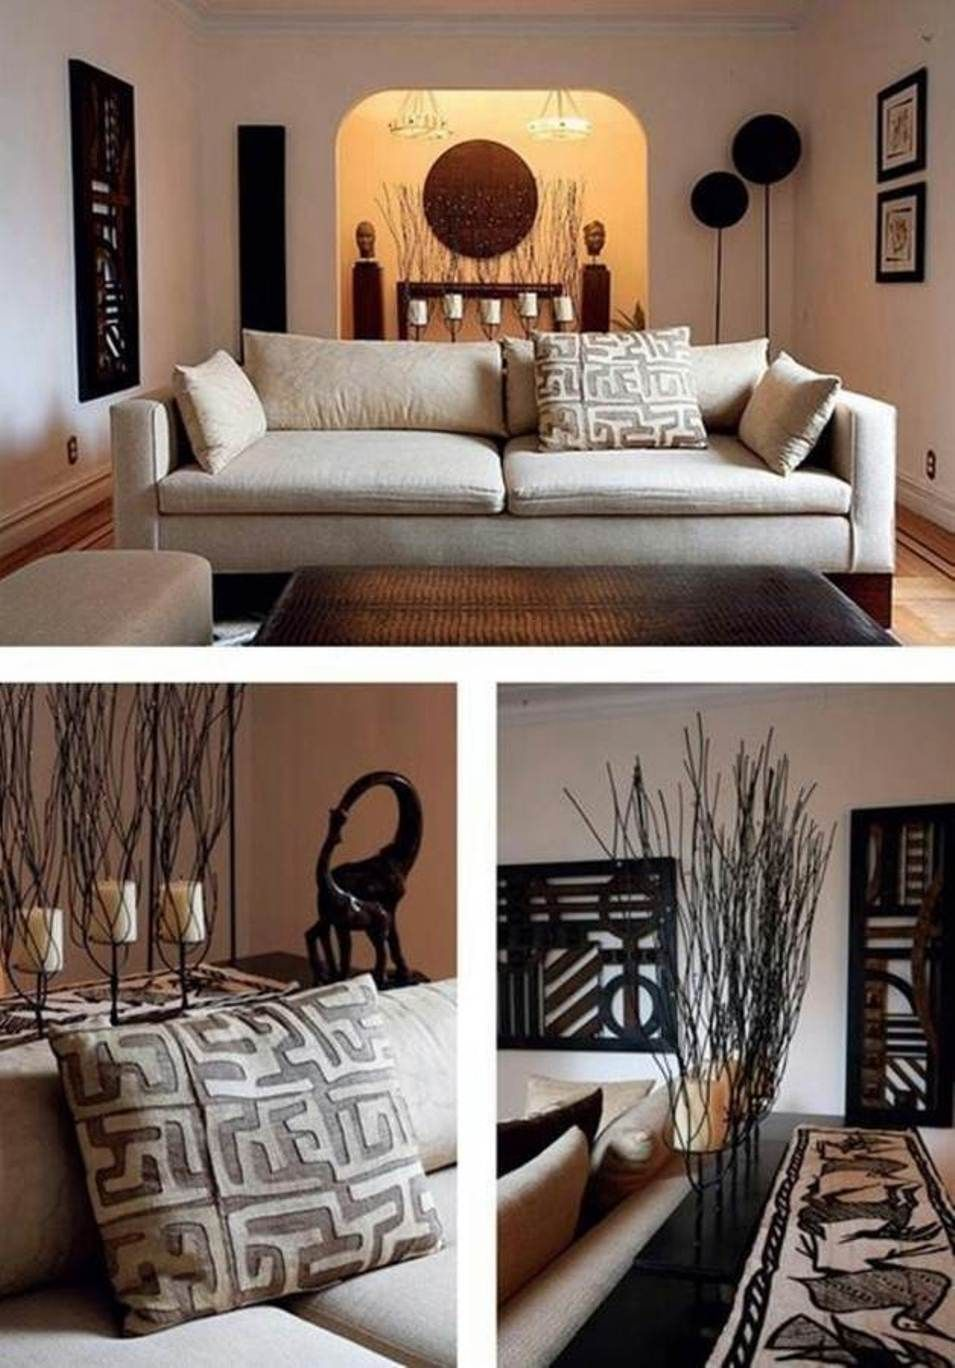 south african decorating ideas african tribal global design south african decorating ideas